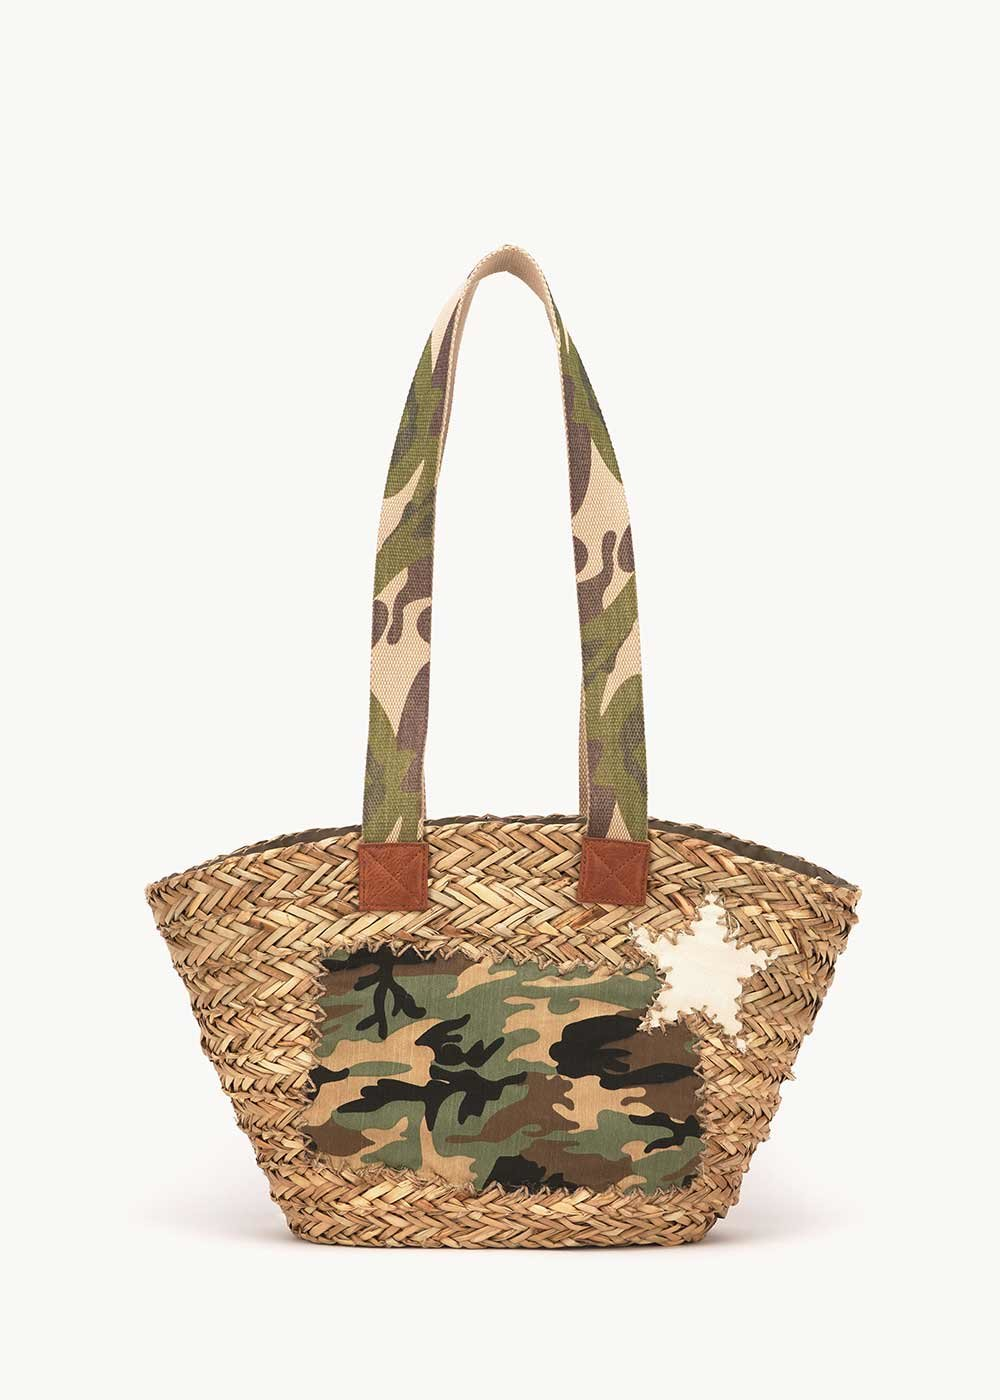 Bairy bag with military-pattern details - Timo Fantasia - Woman